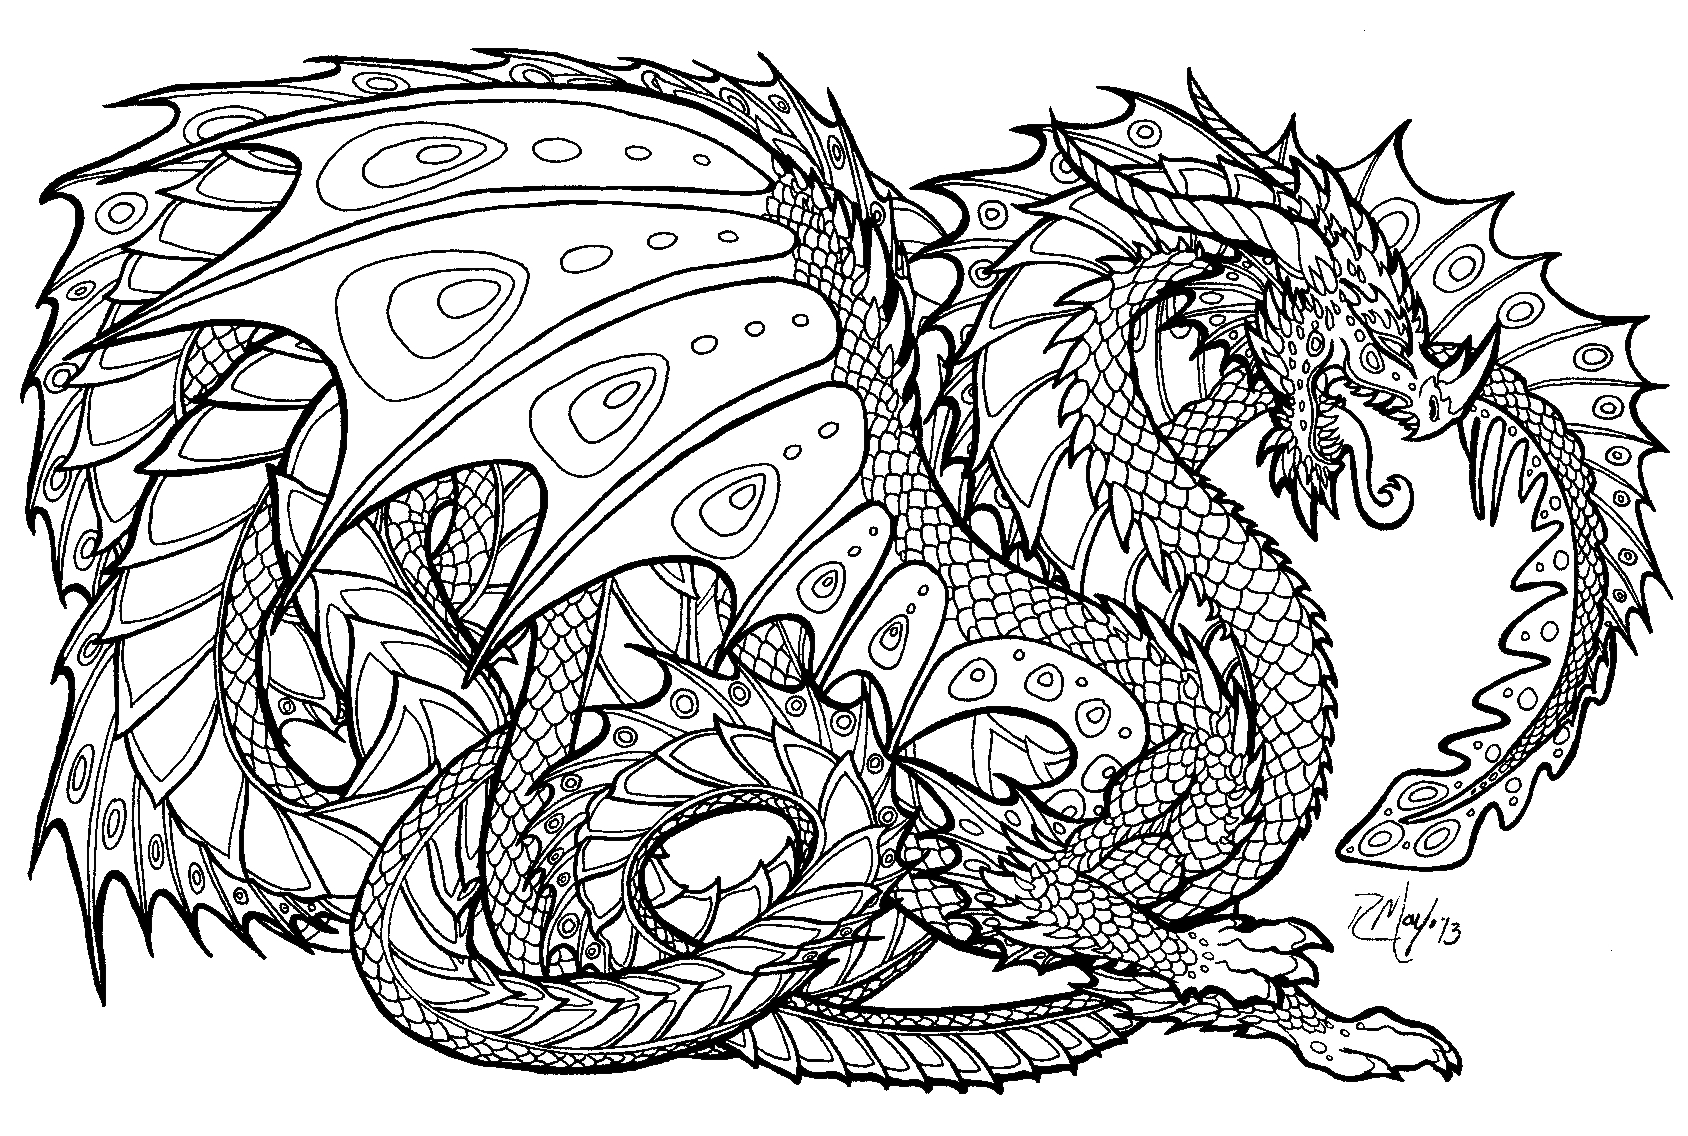 detailed coloring sheets detailed coloring pages to download and print for free sheets detailed coloring